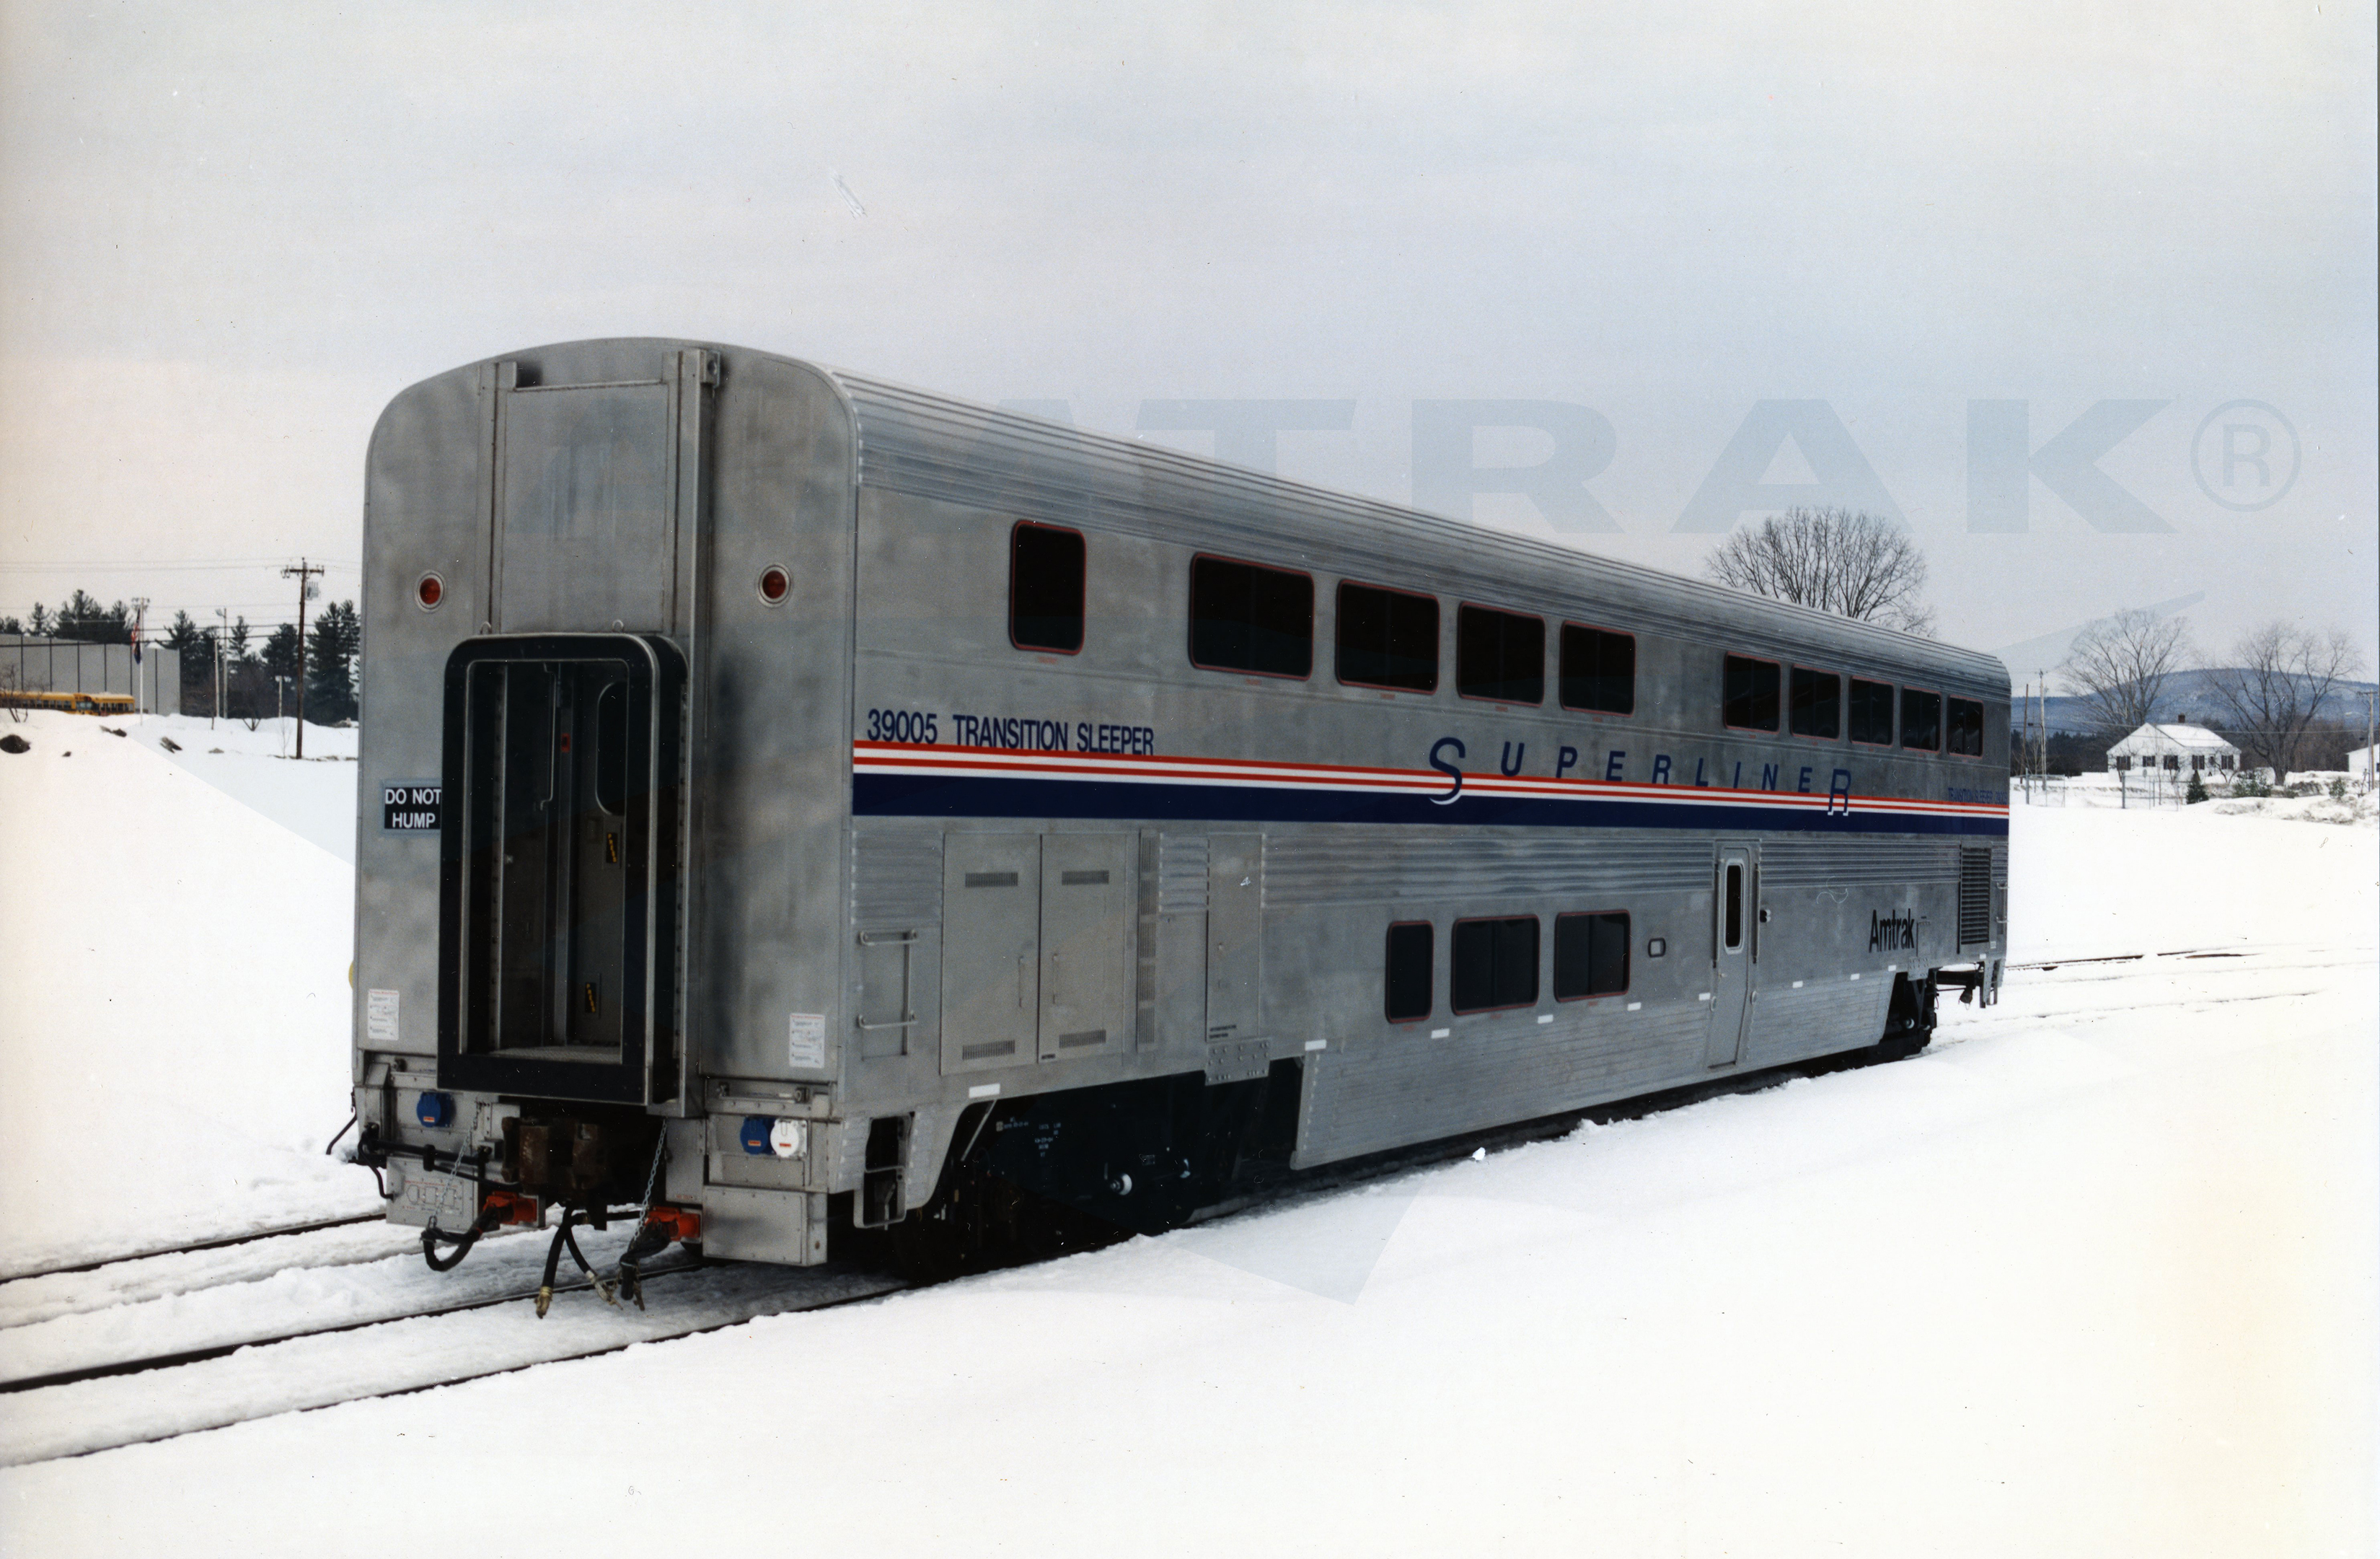 Somethin Special A Superliner History Amtrak History of